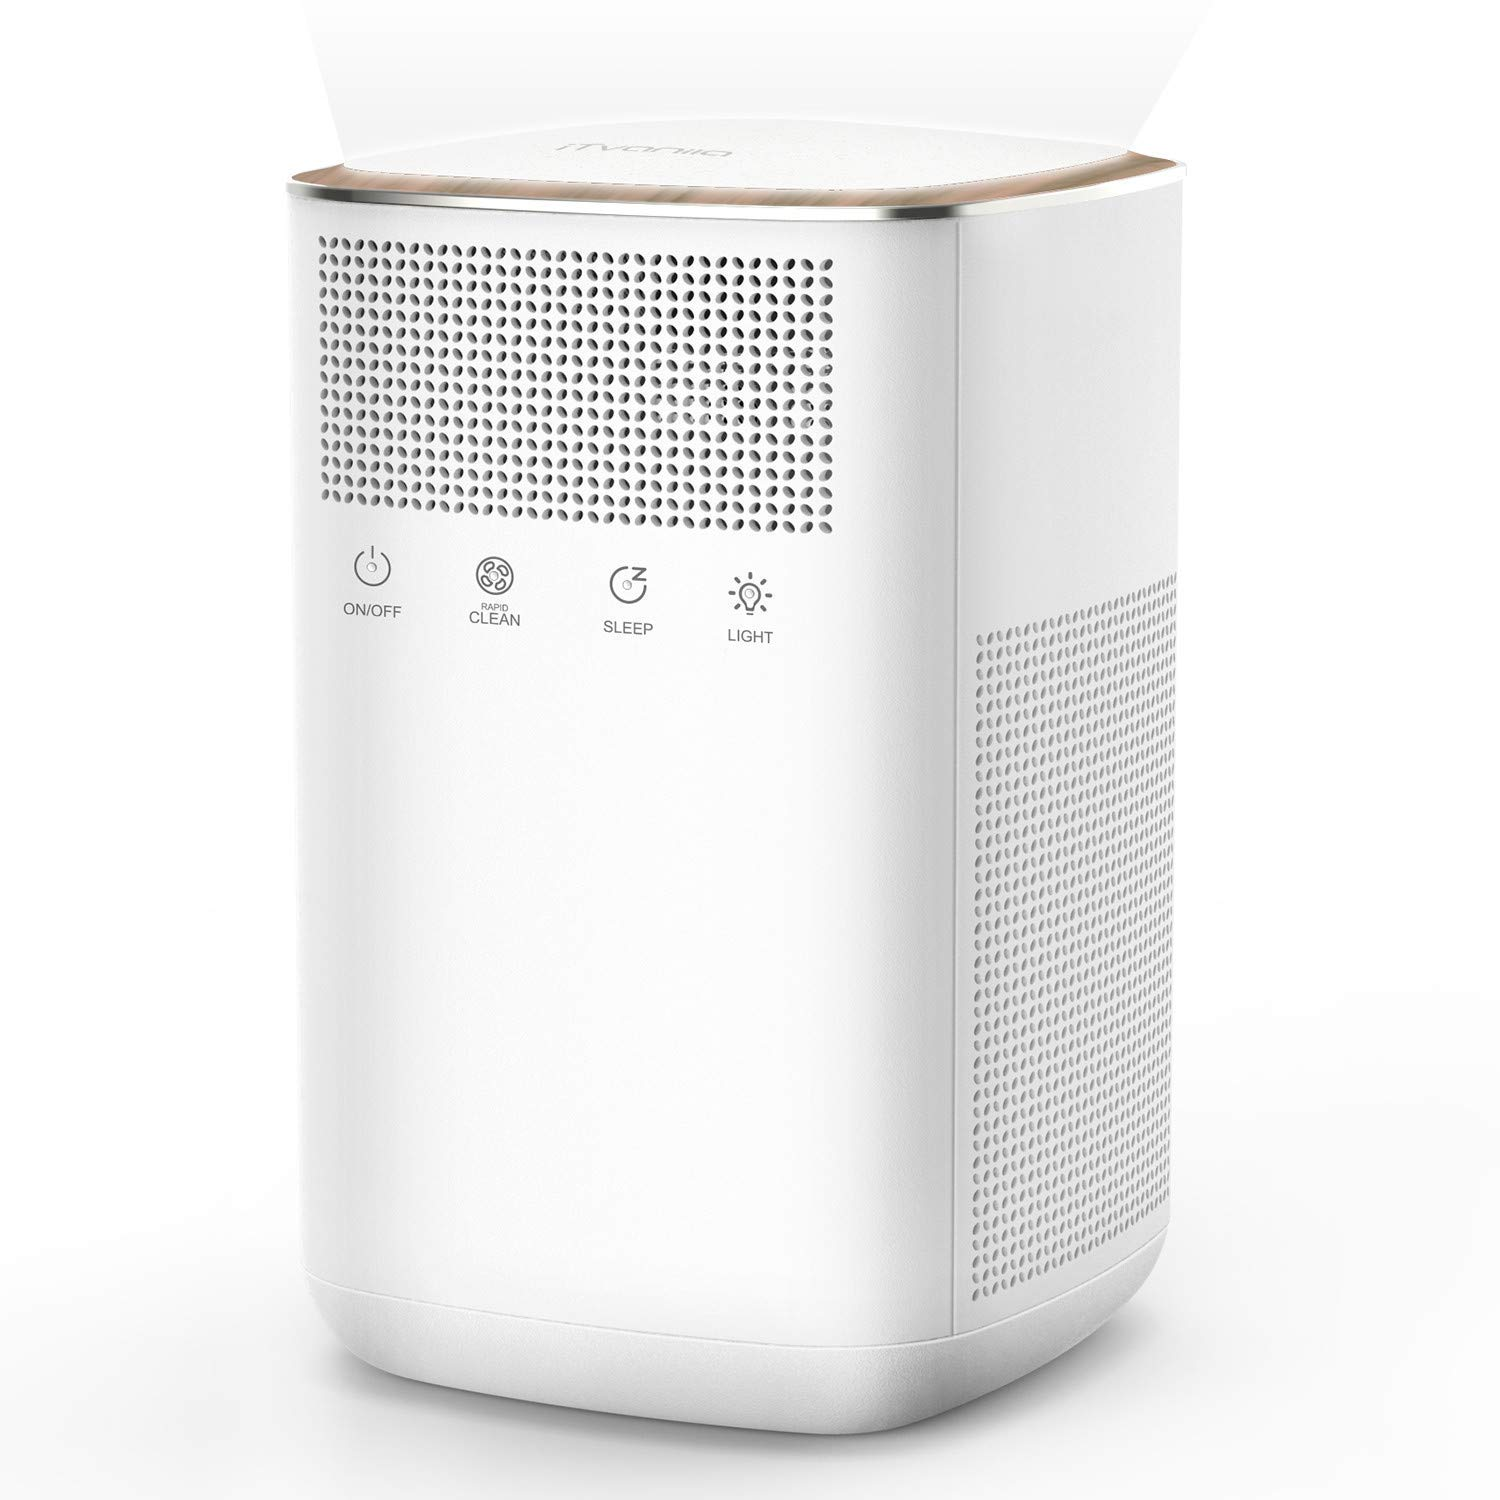 iTvanila Air Purifier with 3M True HEPA Filter, Room Air Purifiers